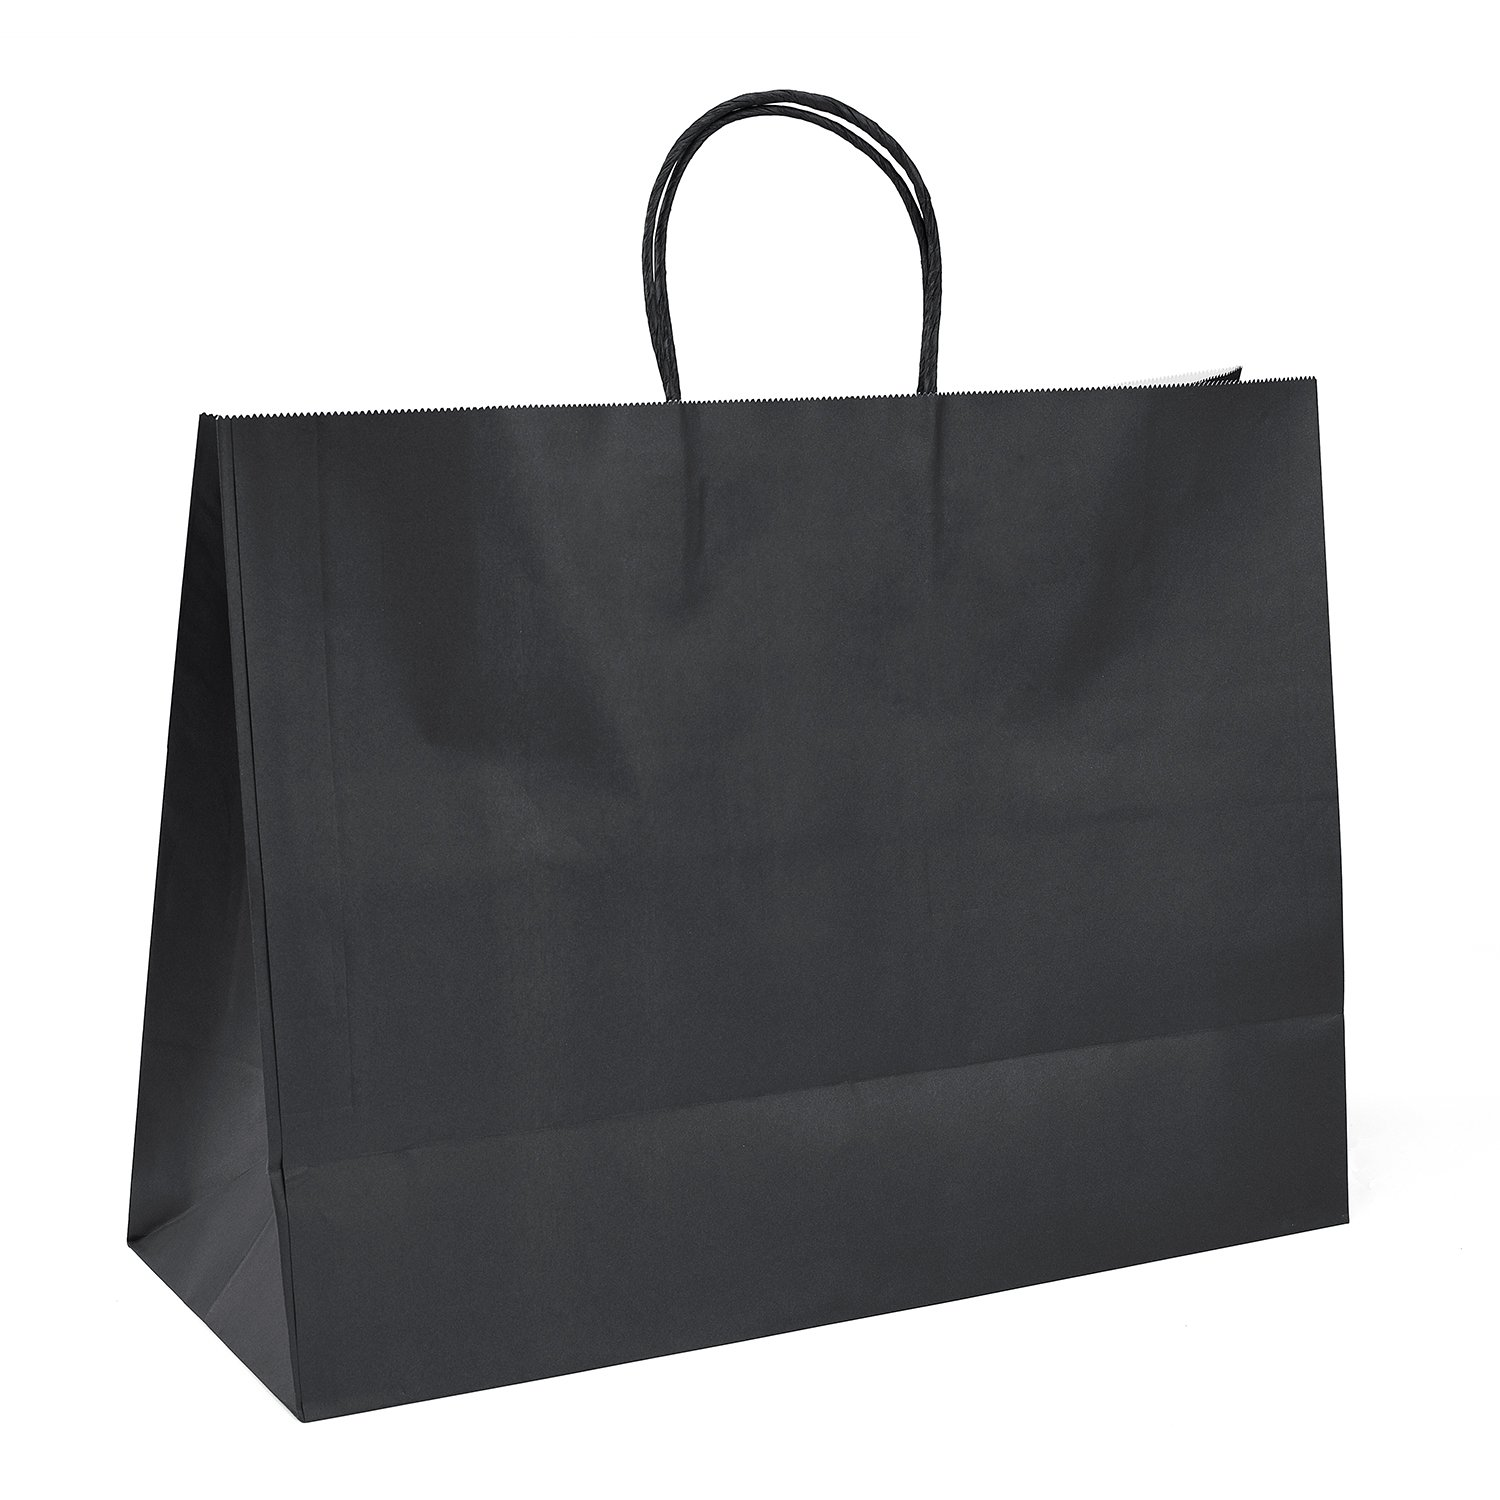 Black Gift Bags 16x6x12''100Pcs GSSUSA Sturdy Shopping Bags,Party Bags,Merchandise Bag, Kraft Bags, Retail Bags, Black Paper Bags with Handles